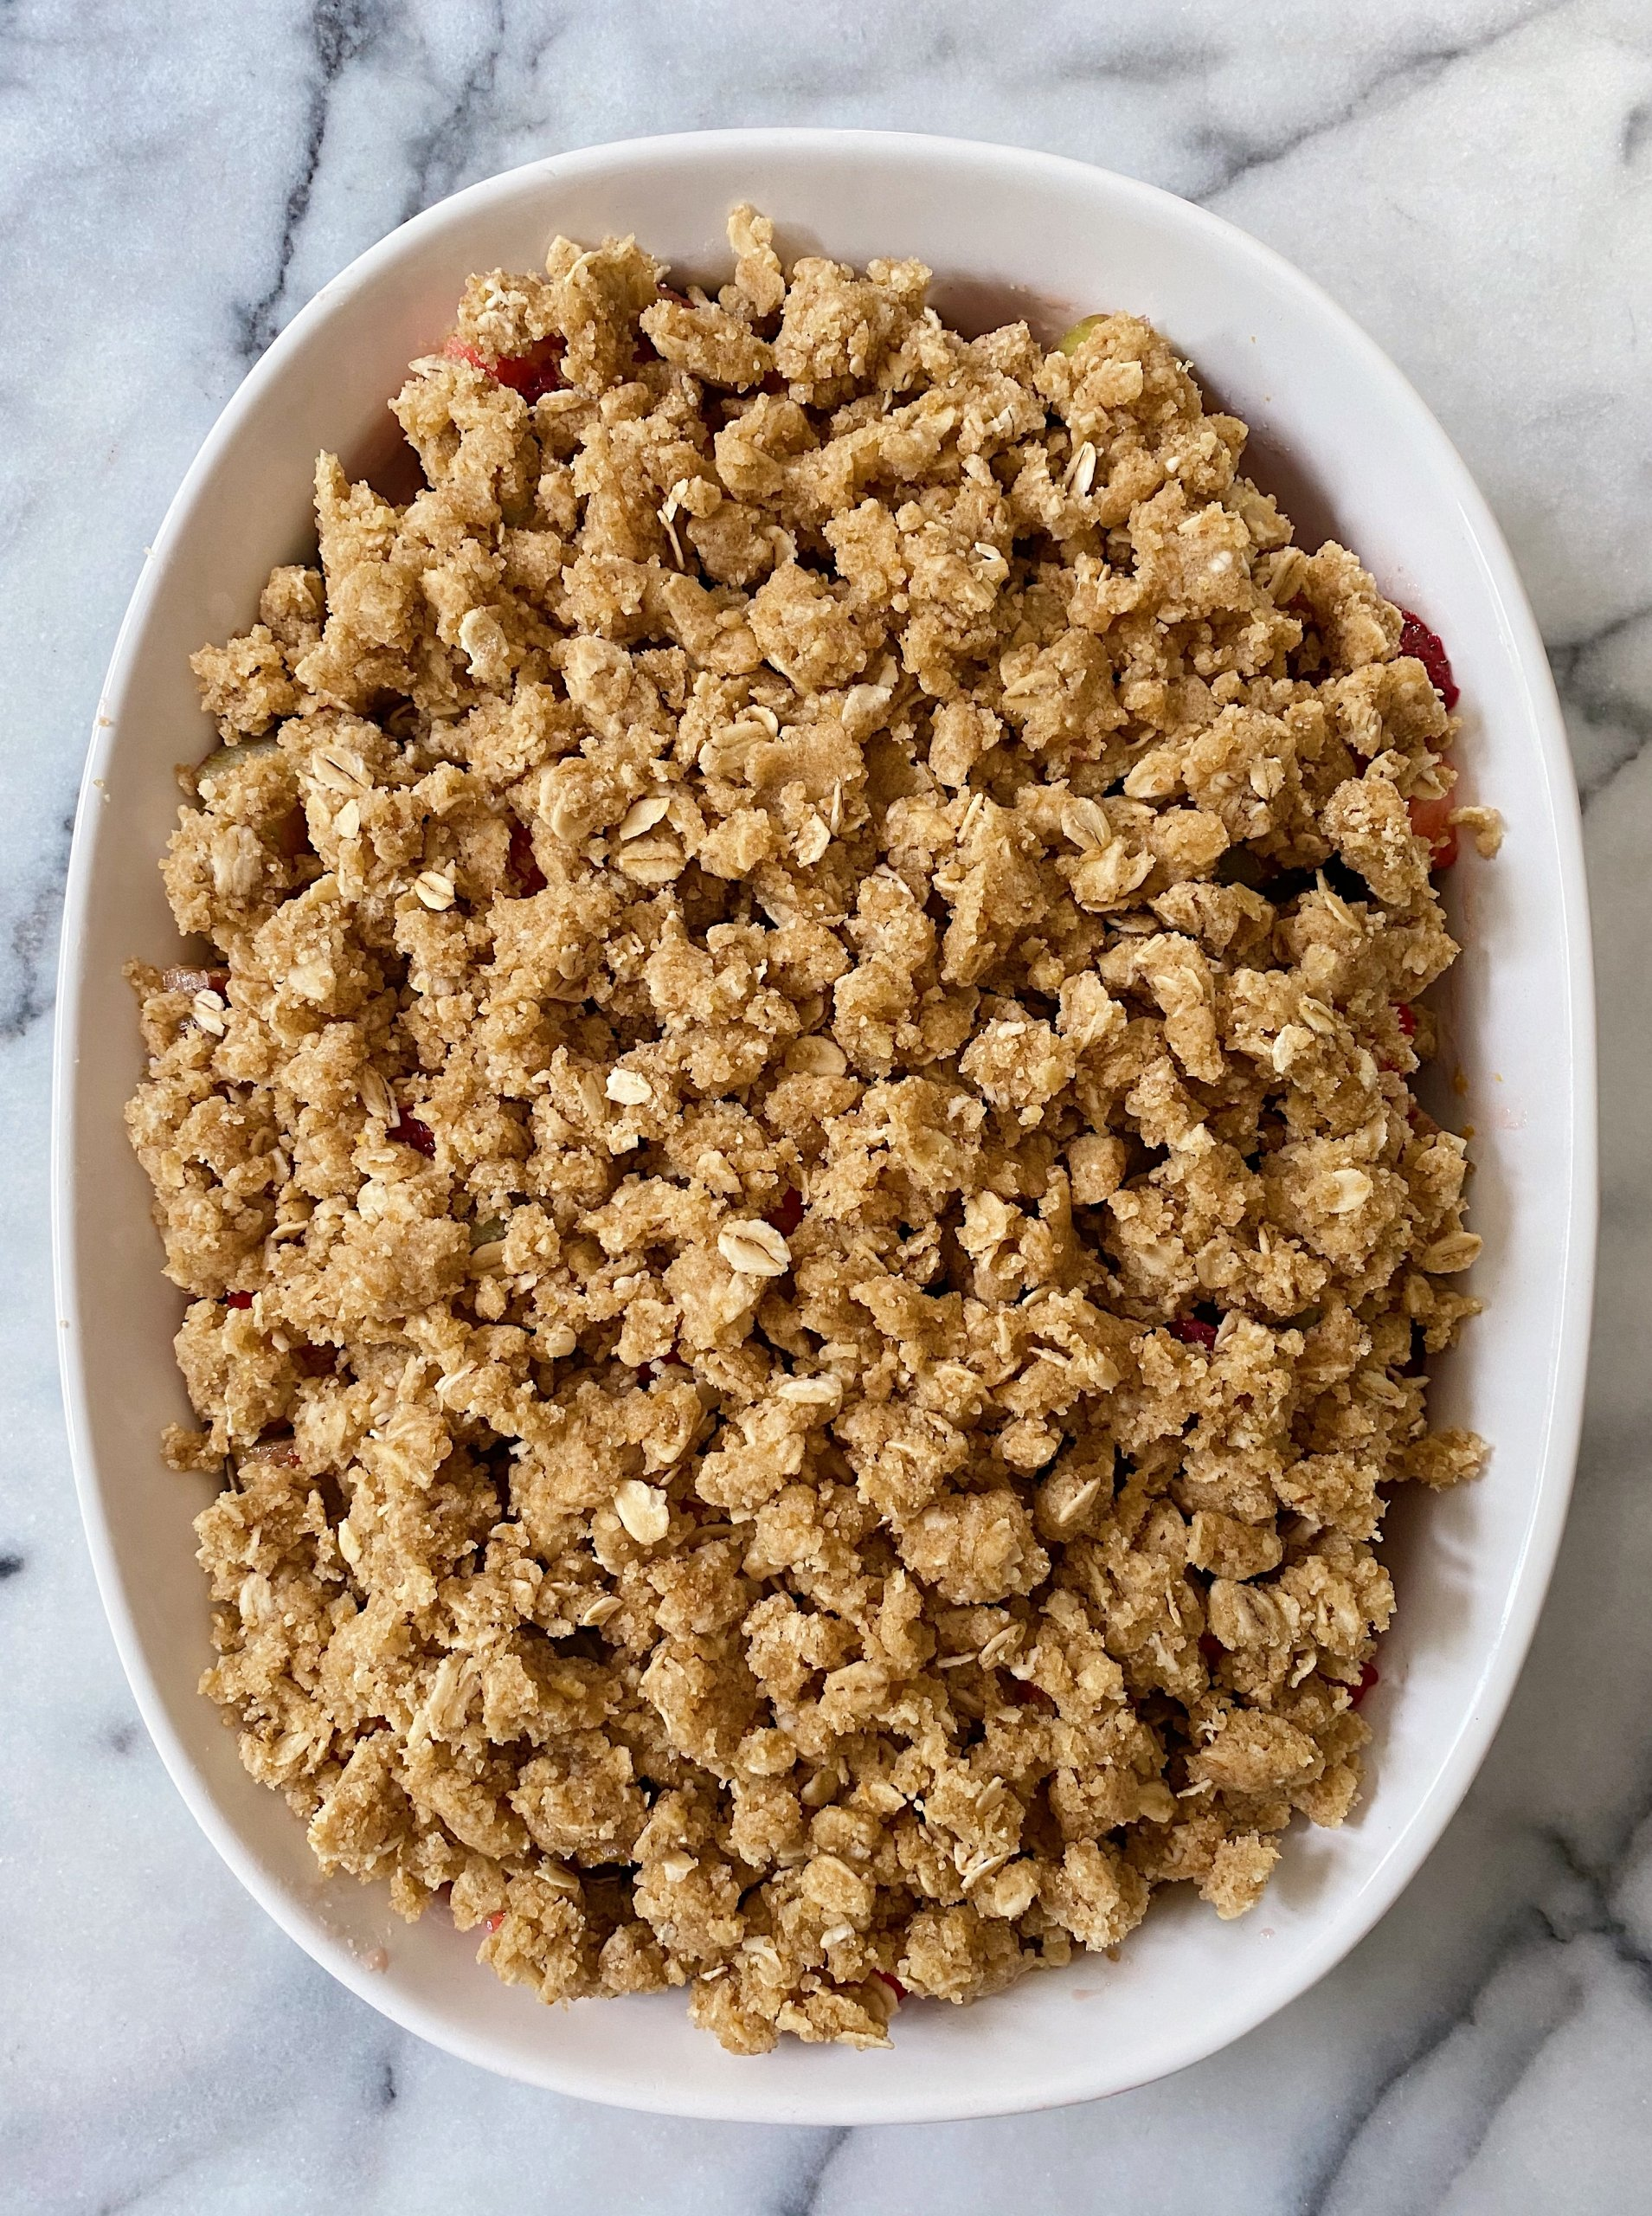 Strawberry Rhubarb Crumble gluten free #glutenfreerecipes www.healthygffamily.com